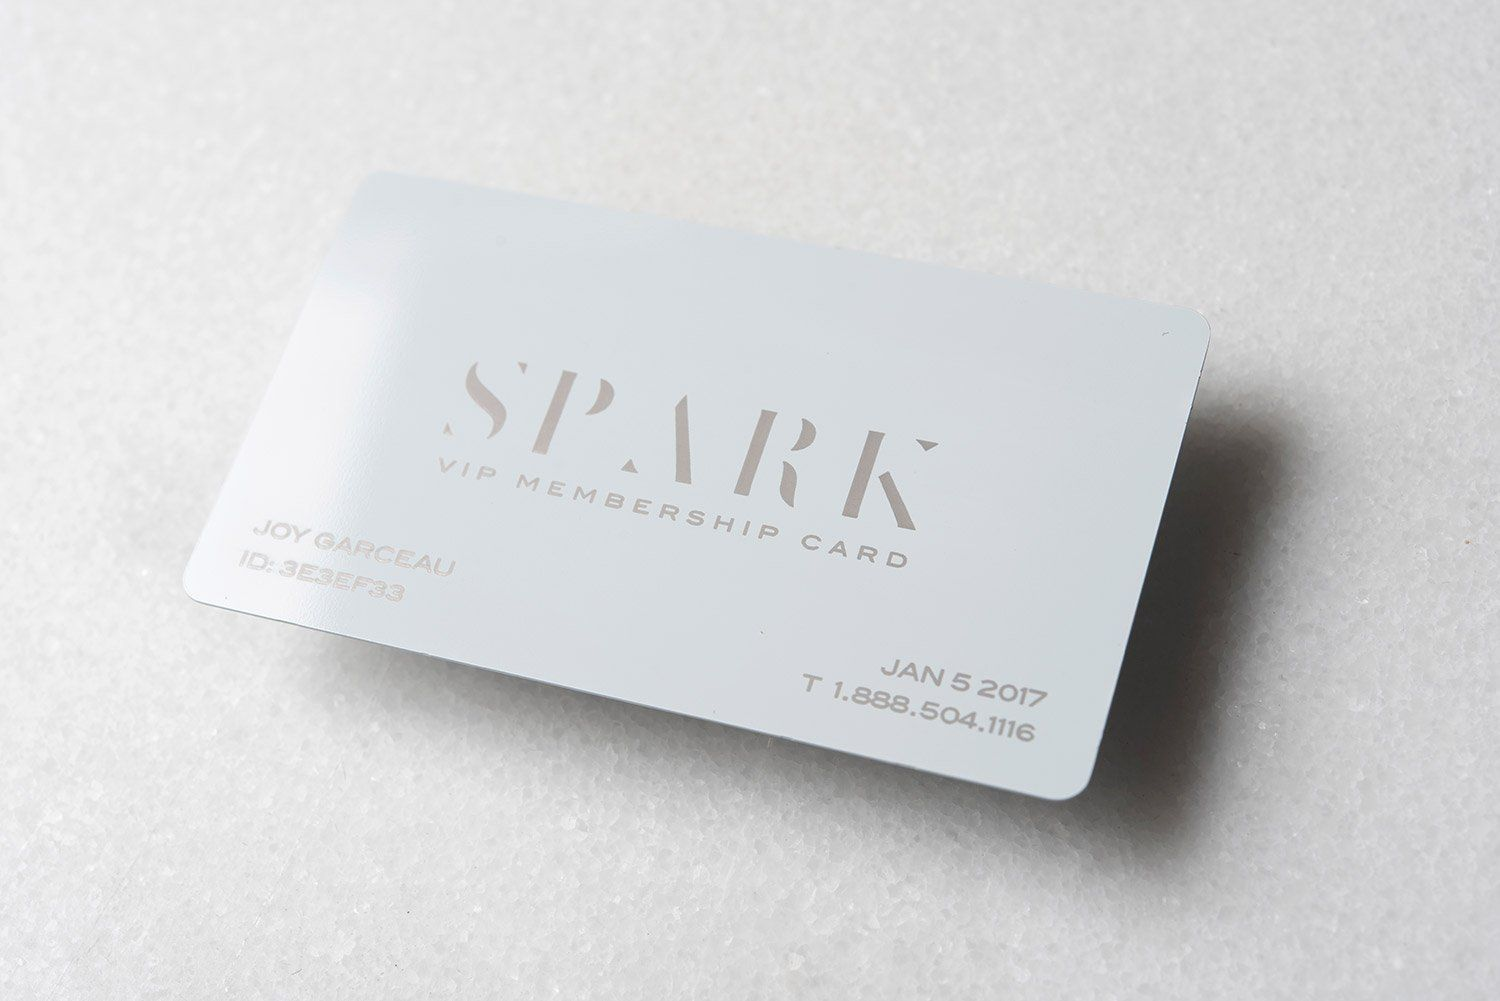 Laser Engraved White Metal Business Cards Design 2 Metalbusinesscards Quick Business Cards Business Card Template Design Metal Business Cards